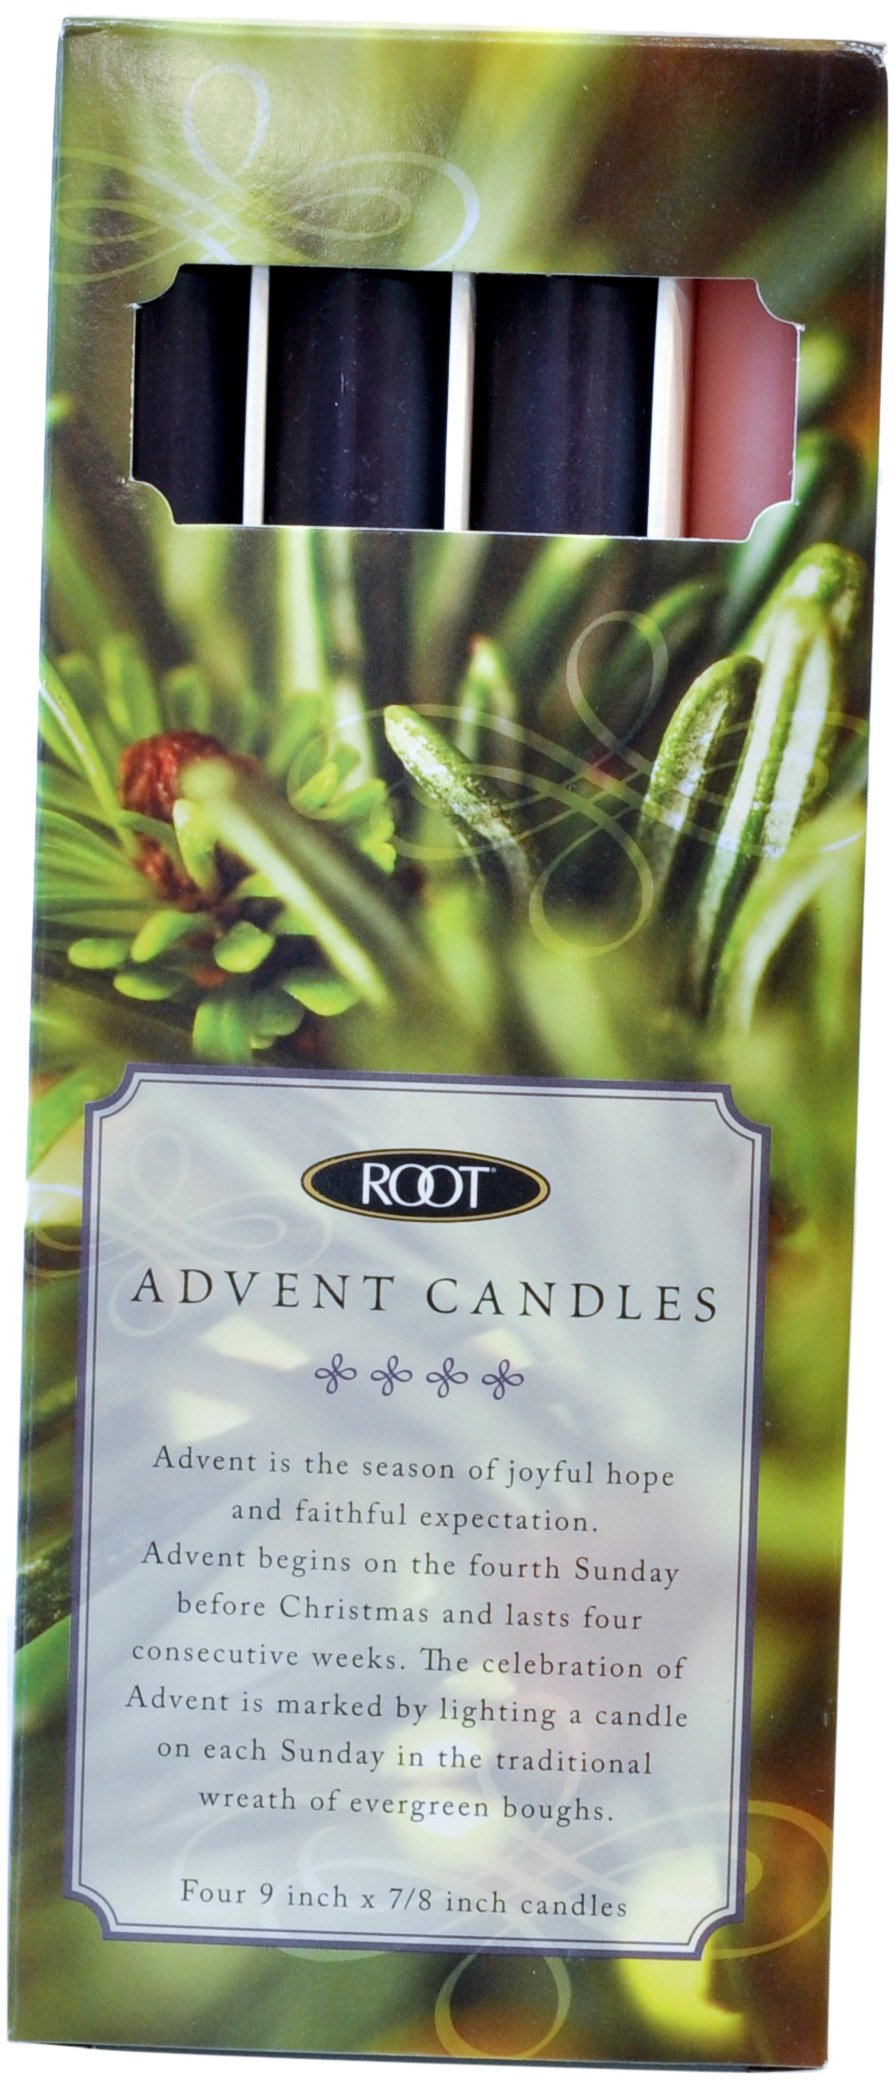 Root Advent Candles, Set of 4